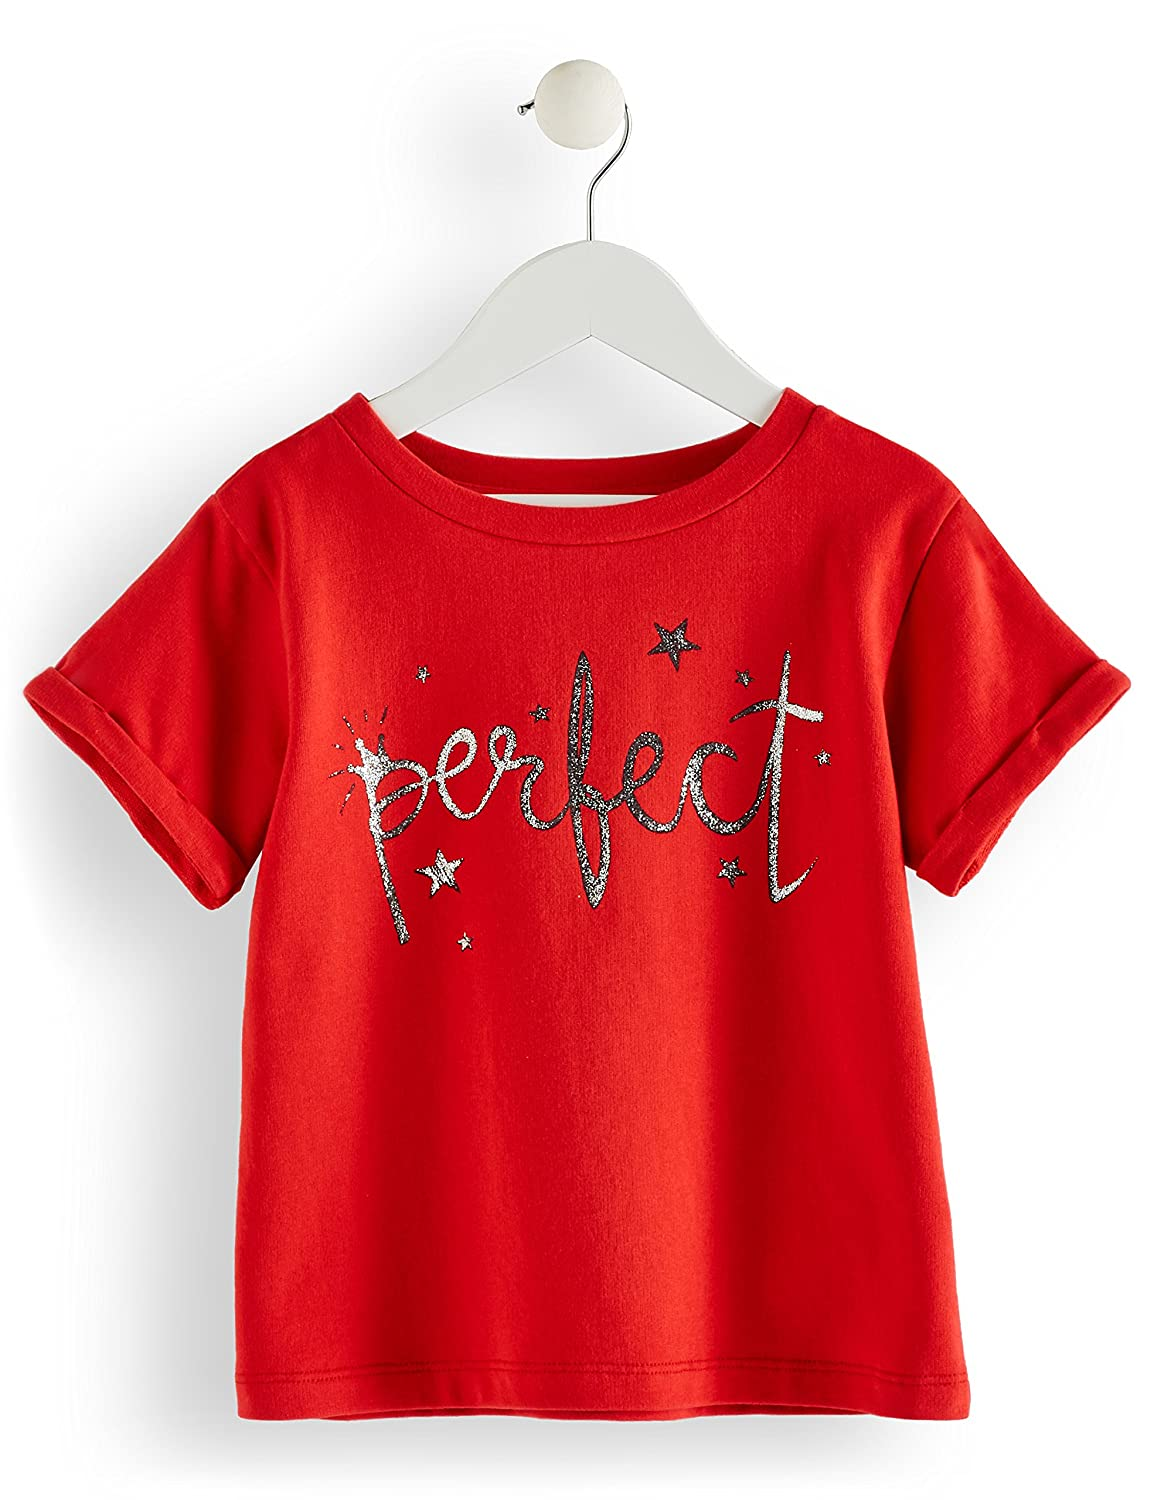 RED WAGON T-Shirt con Stampa Bambina NWSS16021